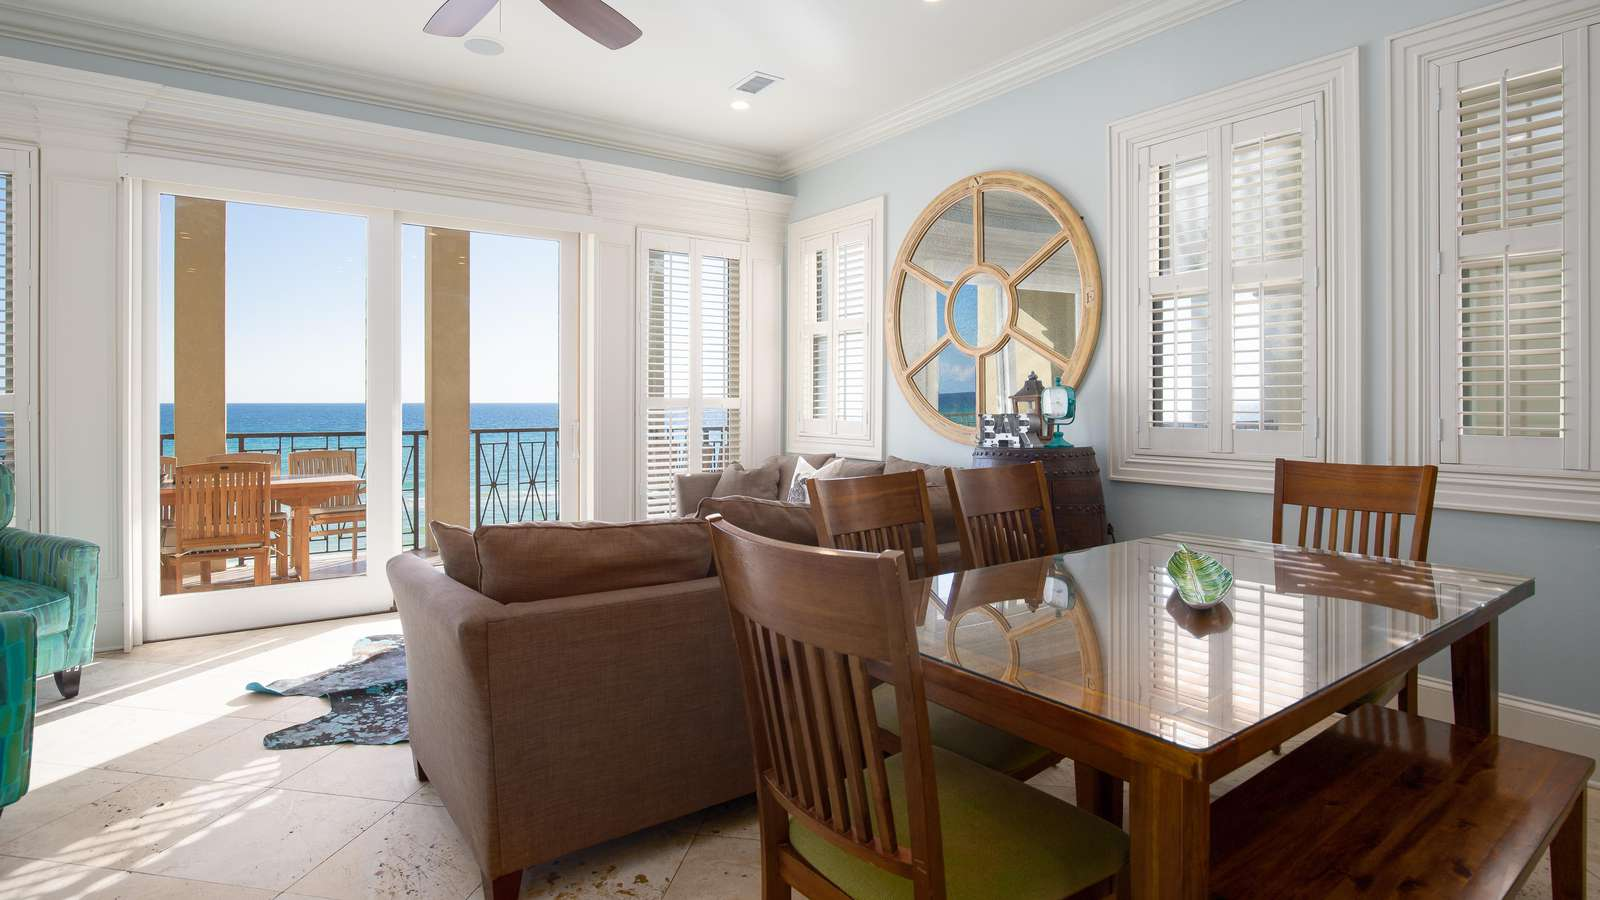 The open living room, dining room, and kitchen look out to the emerald waters!